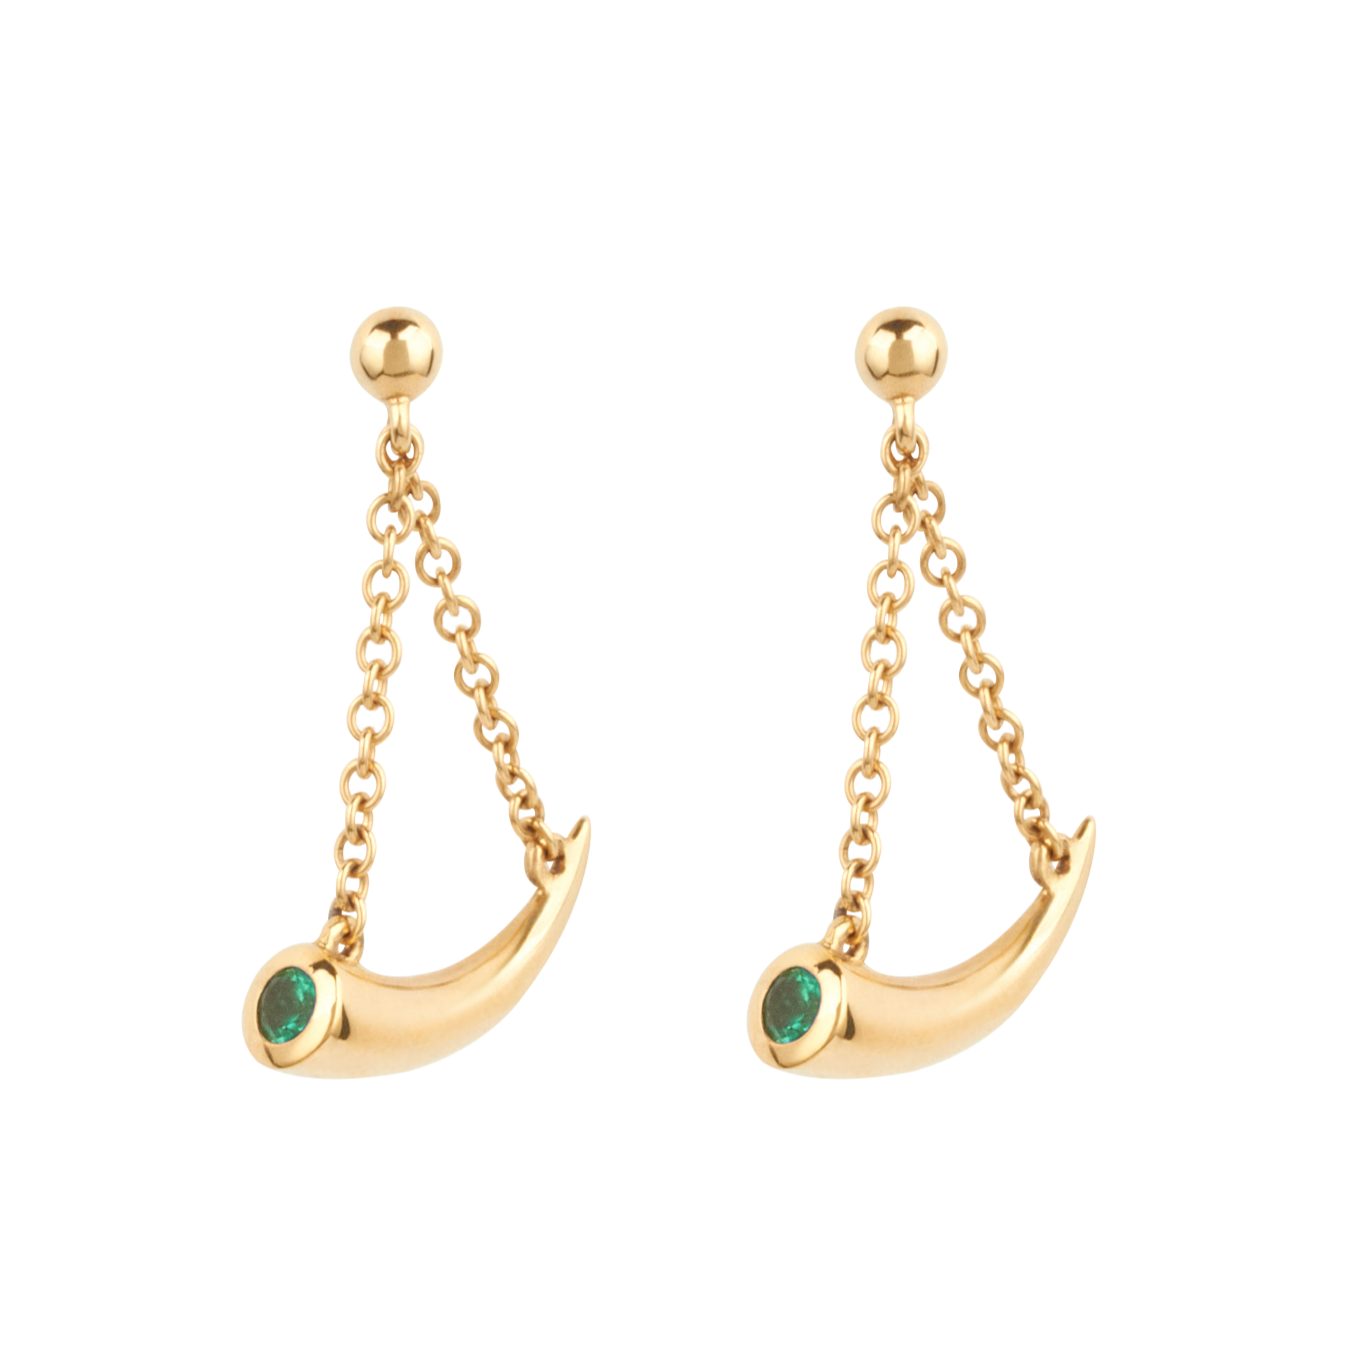 Mosi-oa-tunya Earrings - Emerald